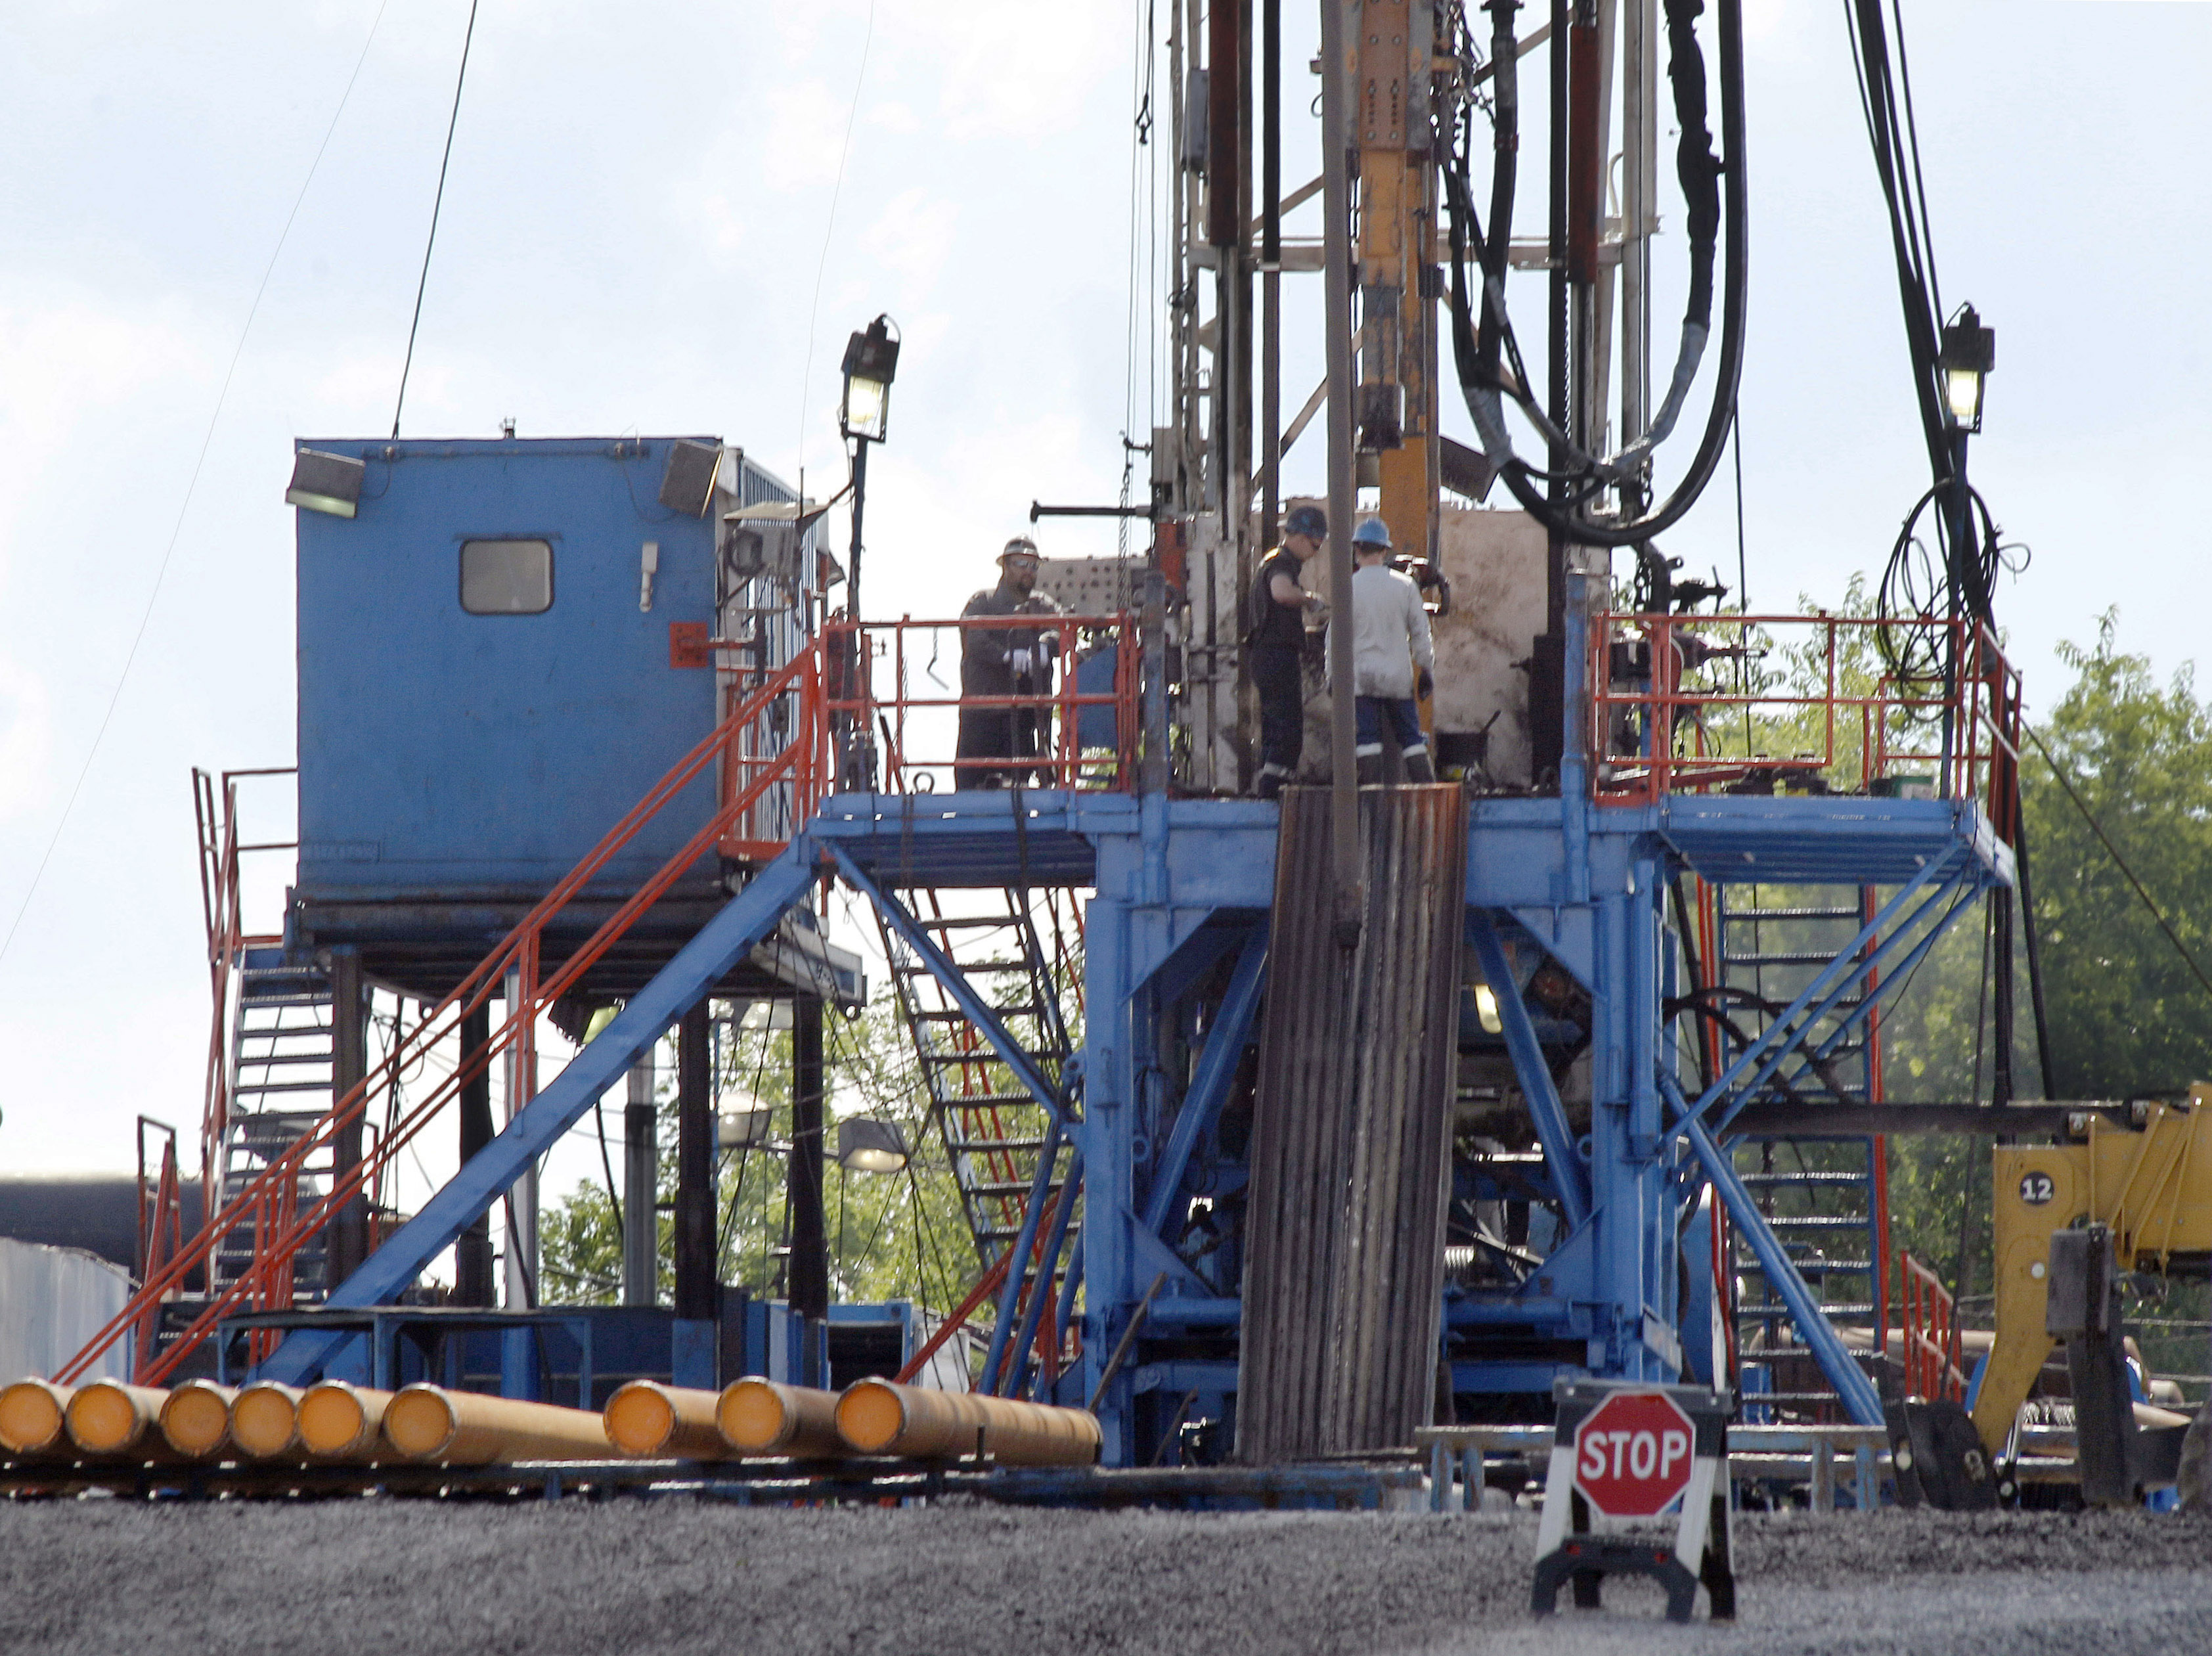 A crew works on a gas drilling rig at a well site for shale based natural gas in Zelienople, Pa on Feb. 28. 2013.